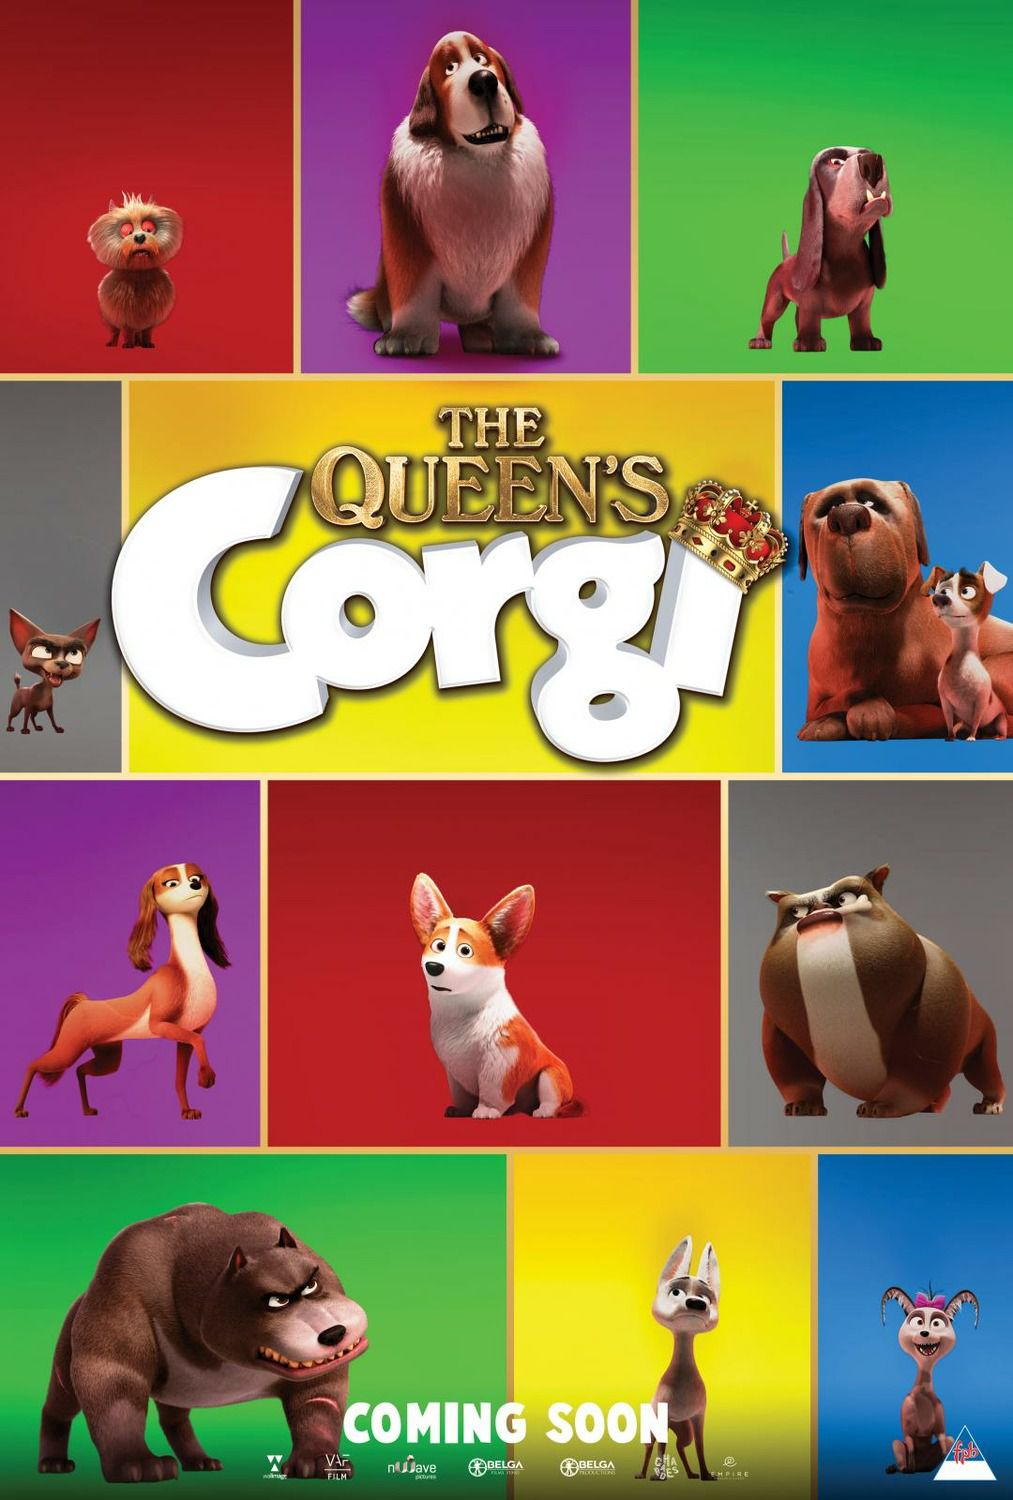 Queens Corgi 2019 animated movie poster